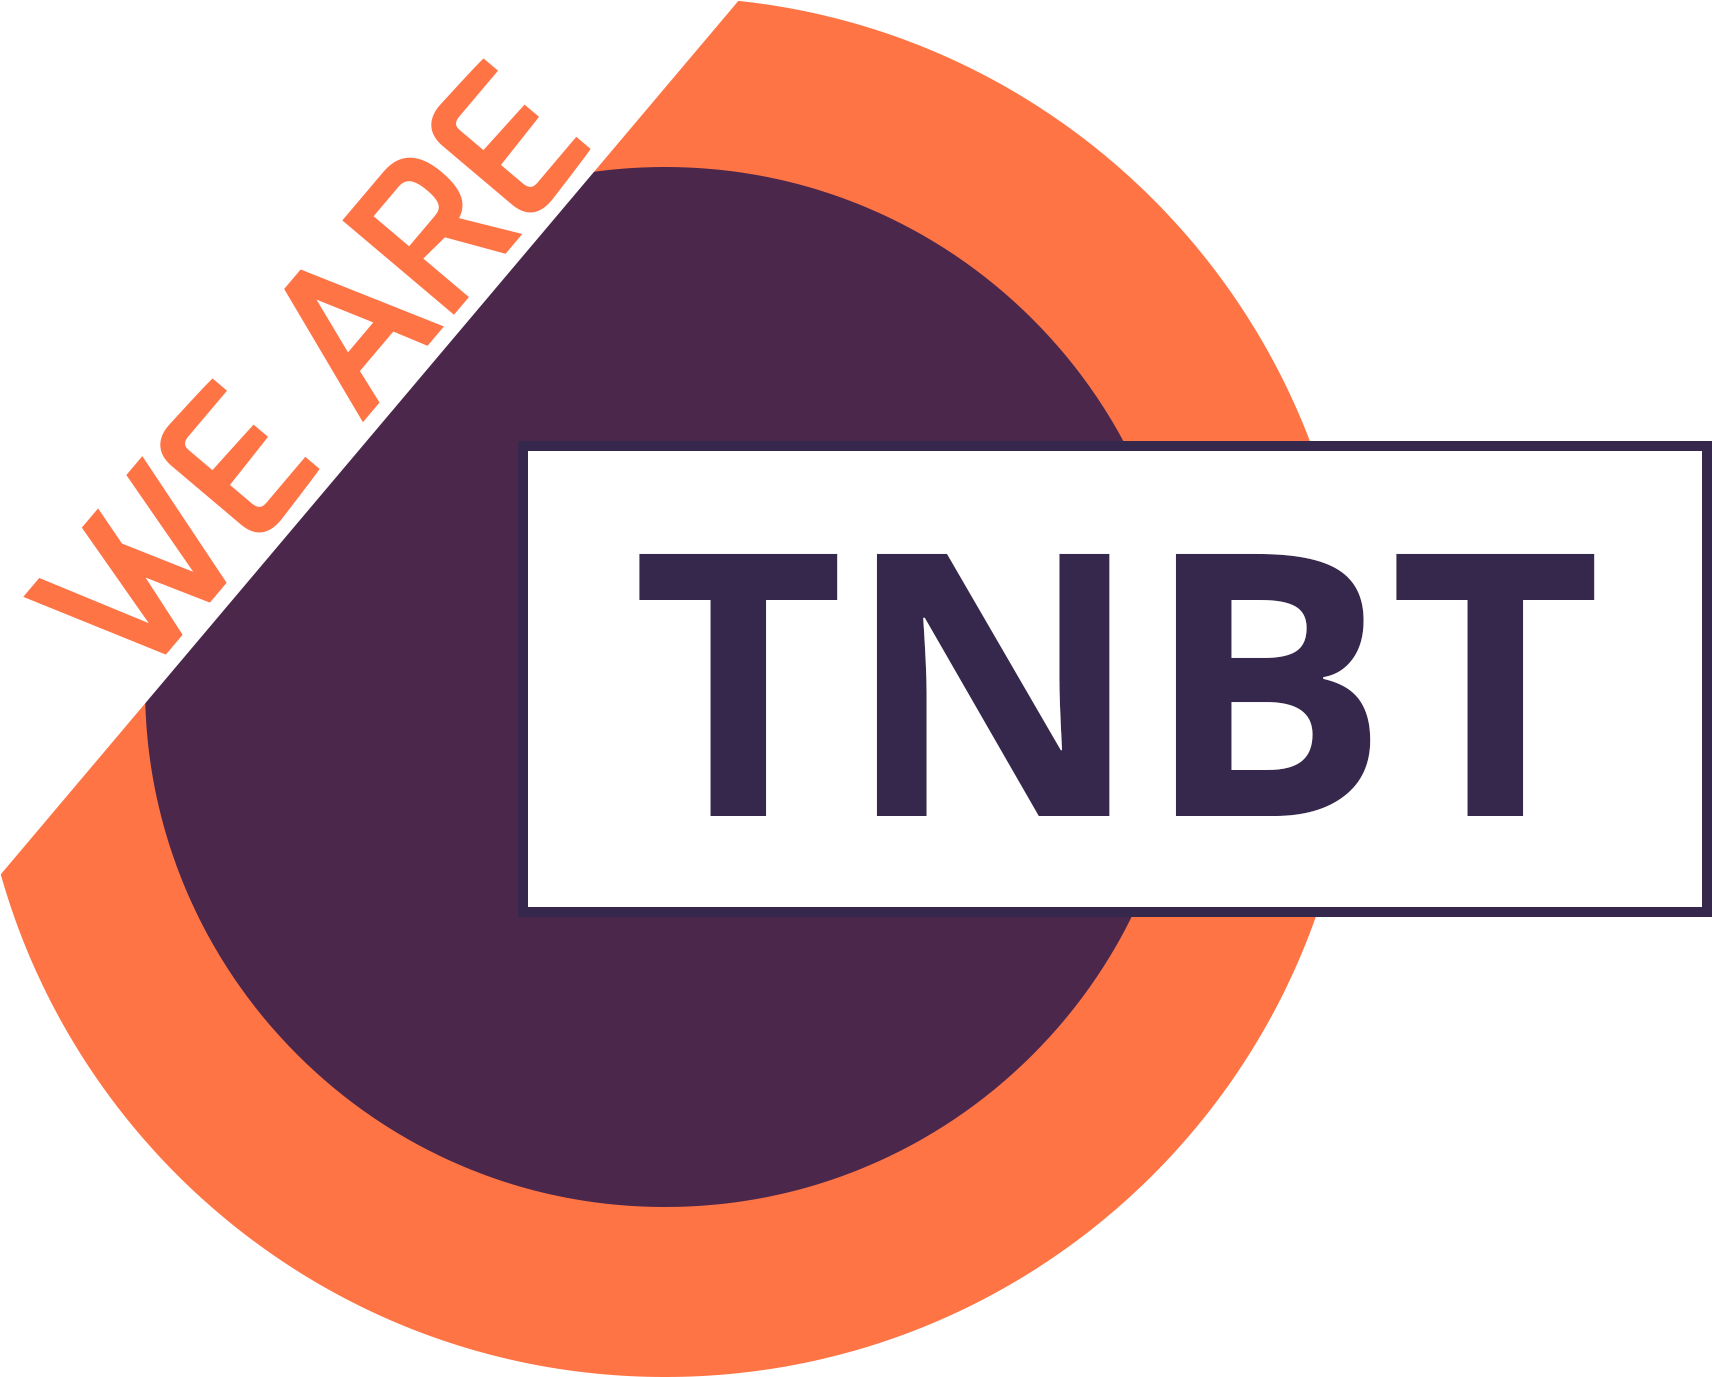 We Are TNBT